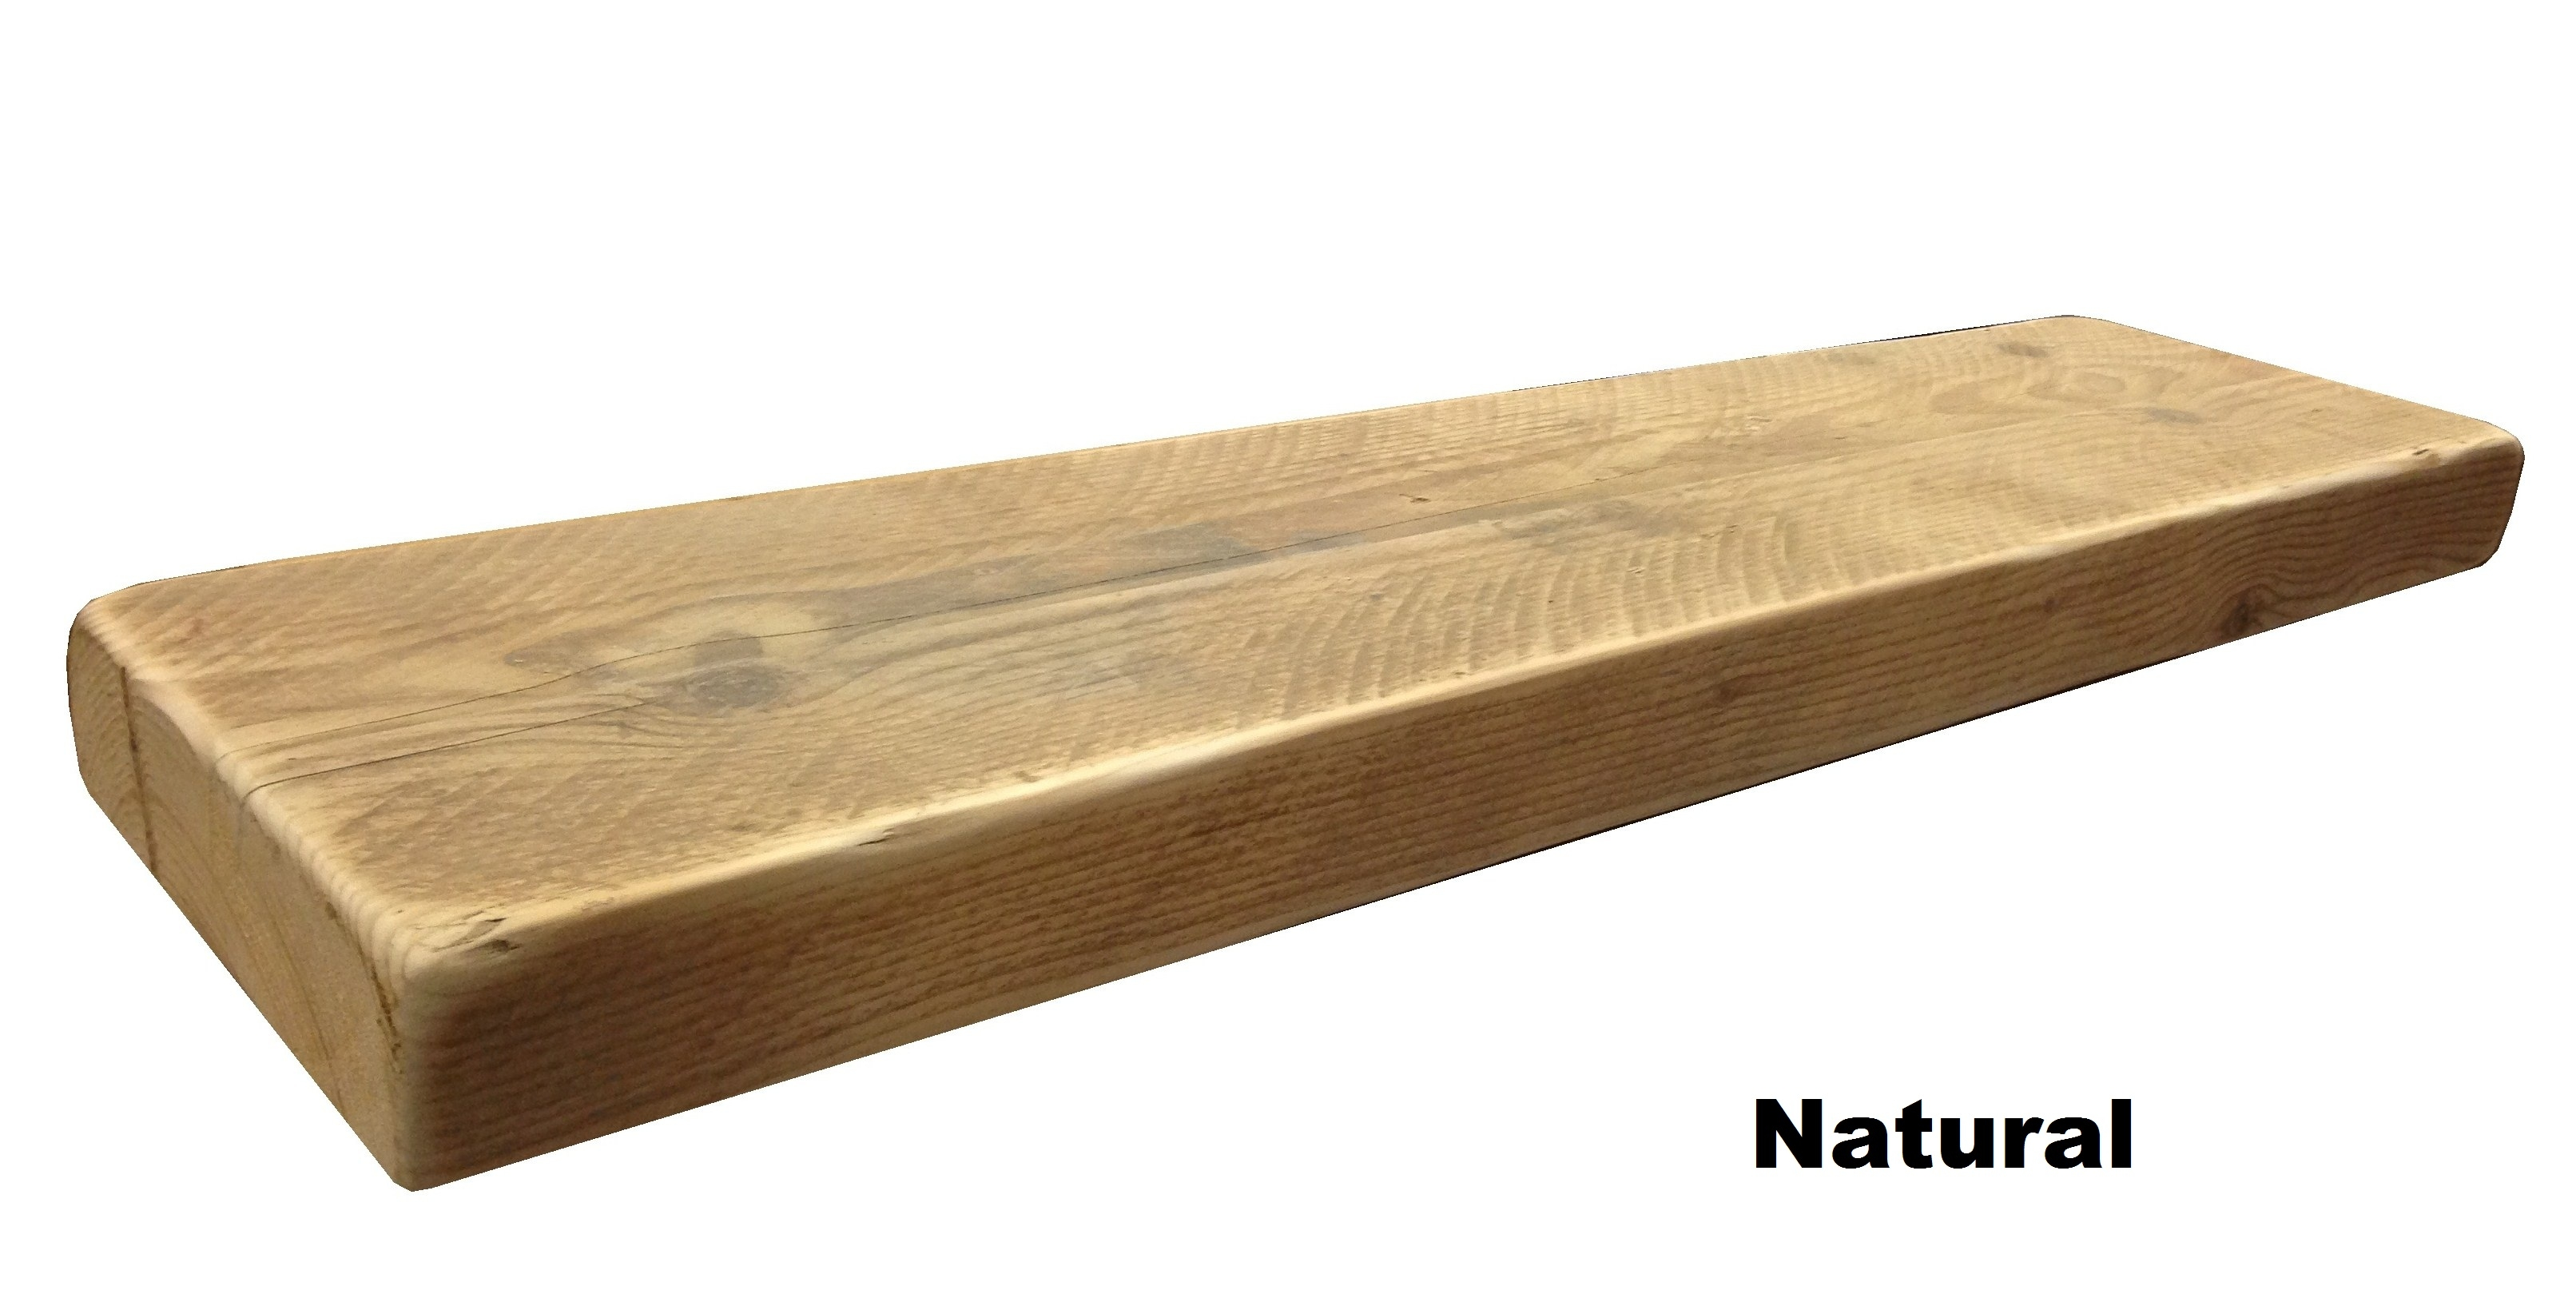 Rustic Floating Wooden Shelf Solid Reclaimed Chunky Wood Inside Floating Shelf 50cm (Image 14 of 15)